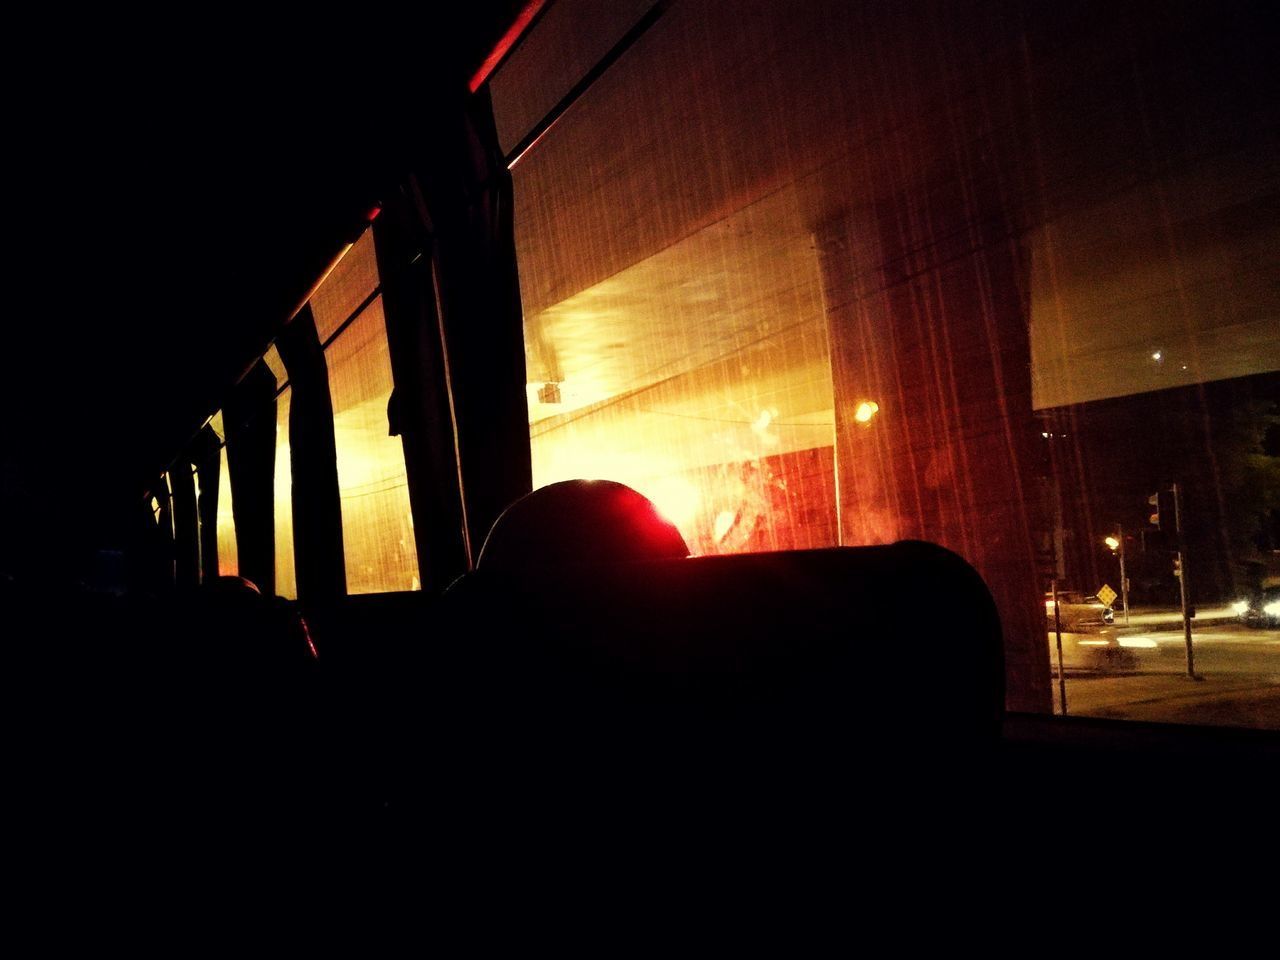 Night Illuminated Indoors  Human Body Part One Person People Red Bus Black Traffic Car Outdoors City Life Sky Sleep Awake Destination Travel HEAD